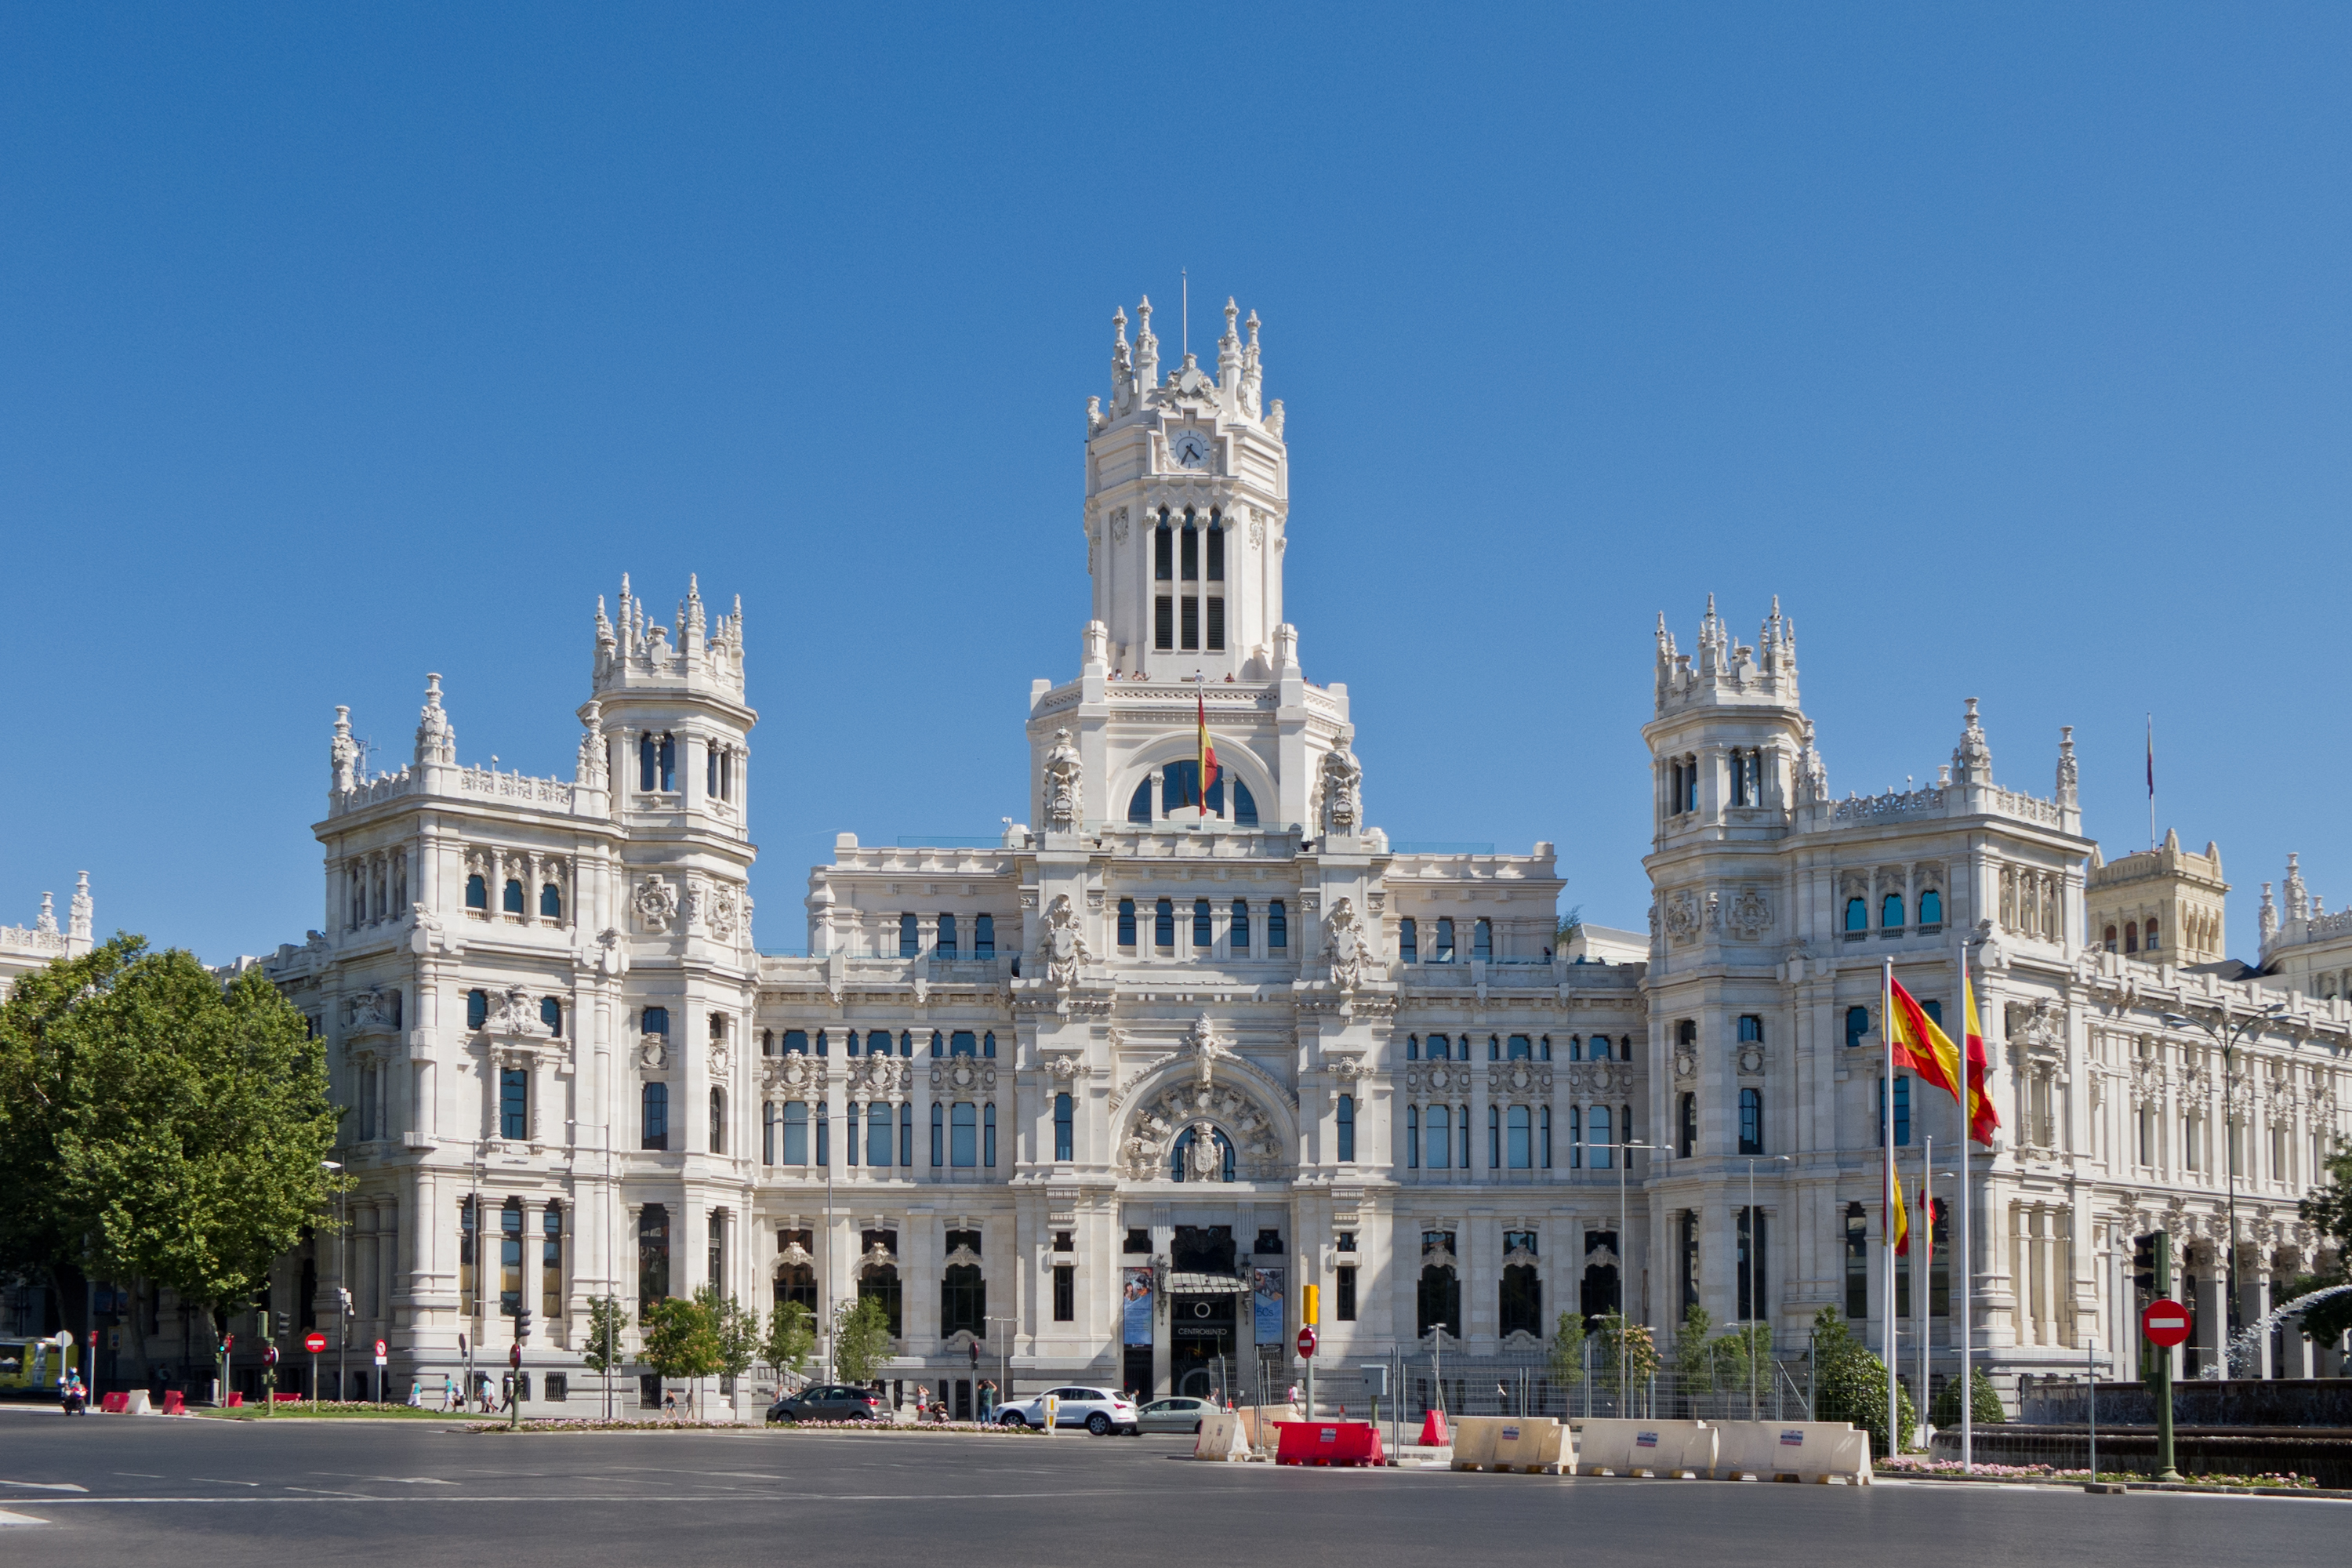 City Hall of Madrid and iconic monument of the city